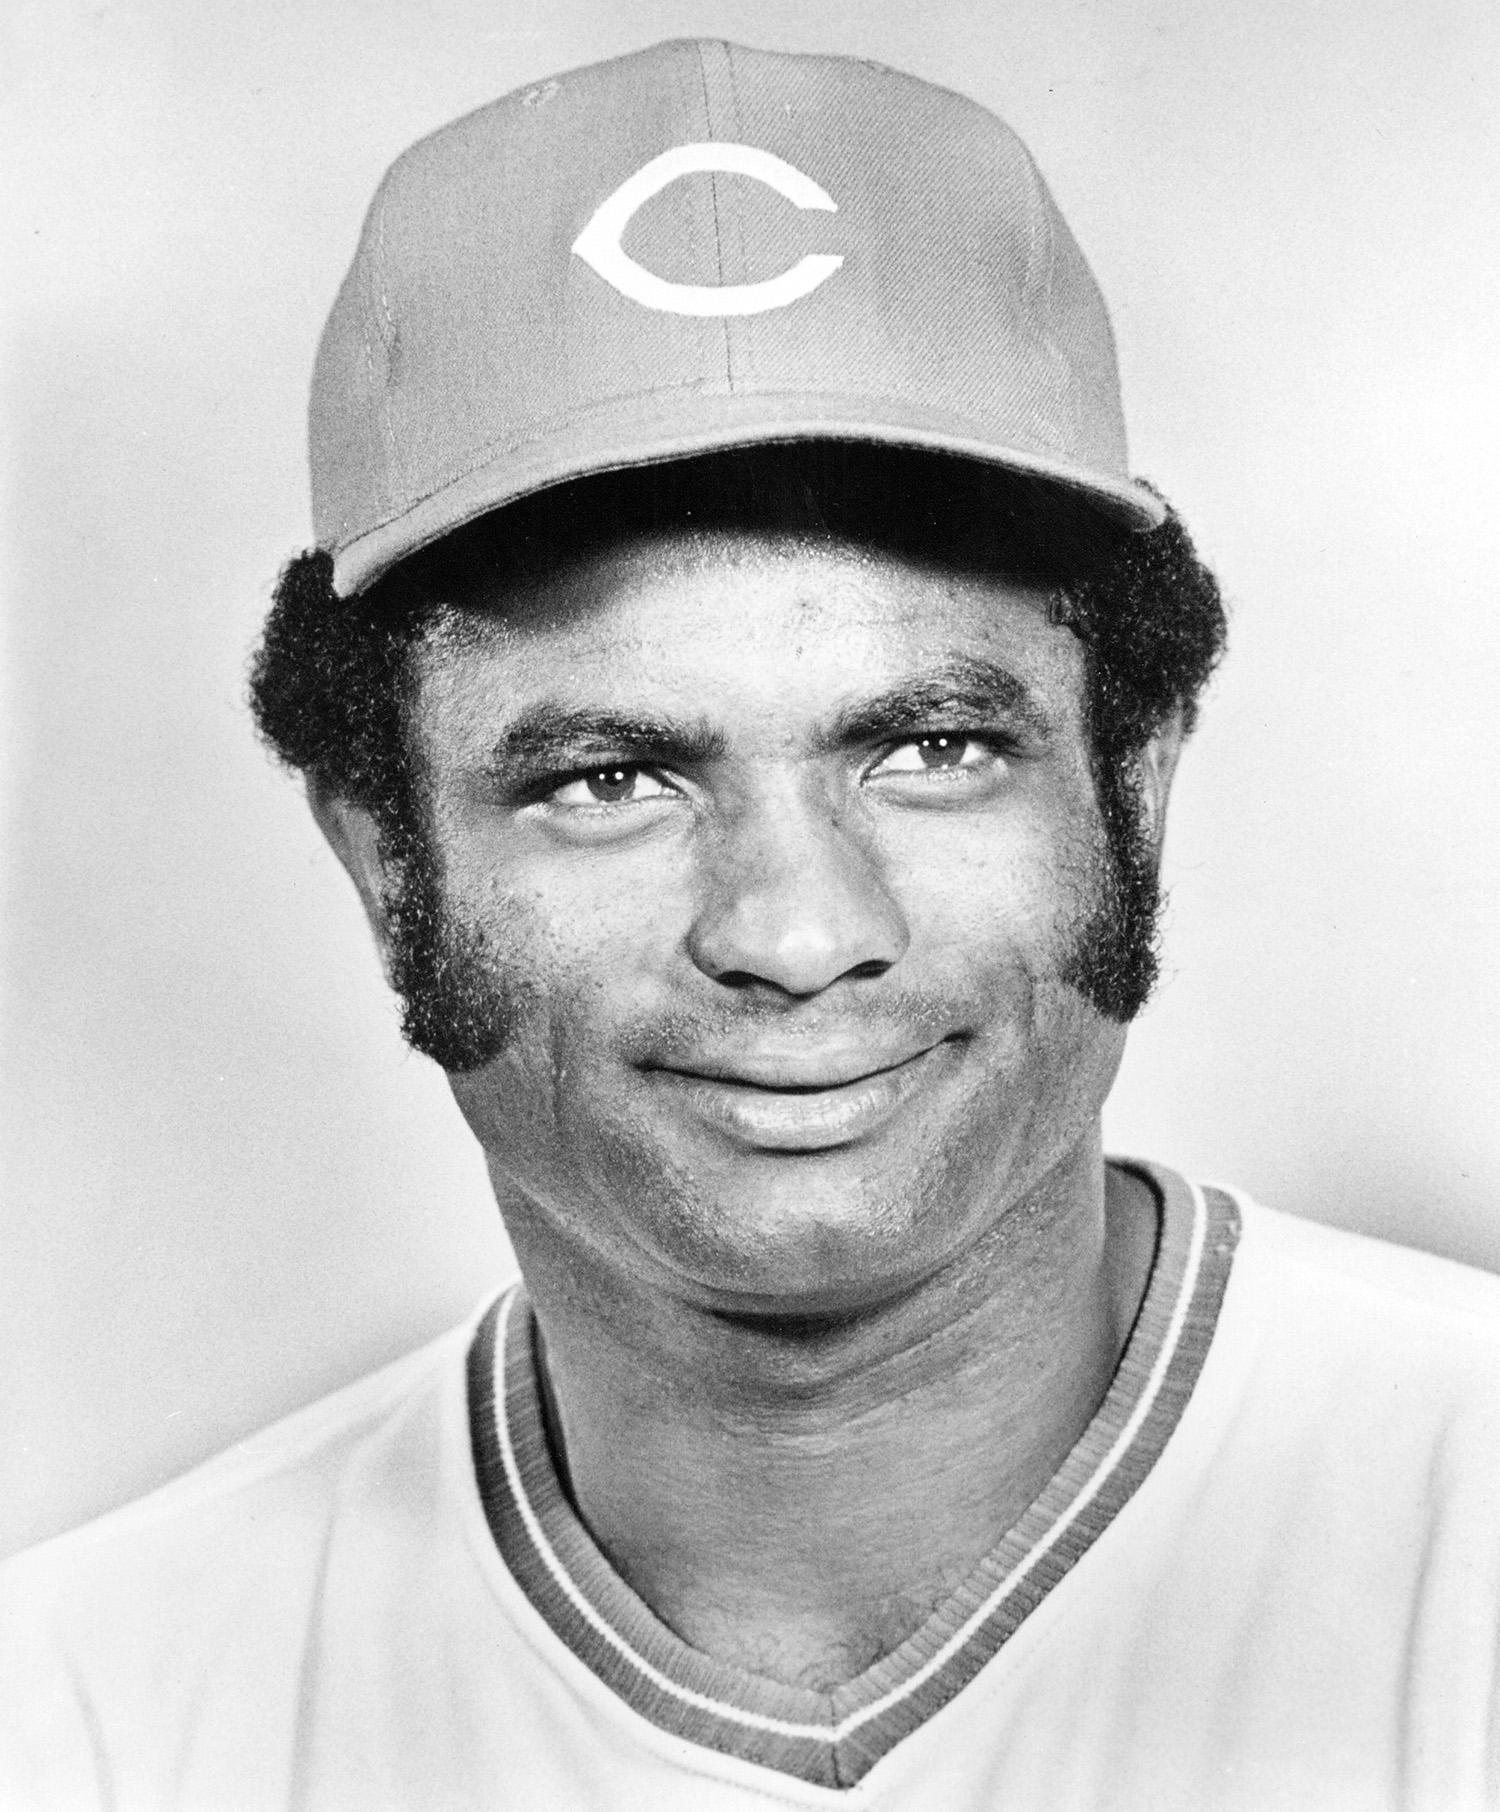 Pedro Borbon would play for the Cincinnati Reds from 1970-1979, under future Hall of Famer Sparky Anderson. (National Baseball Hall of Fame)